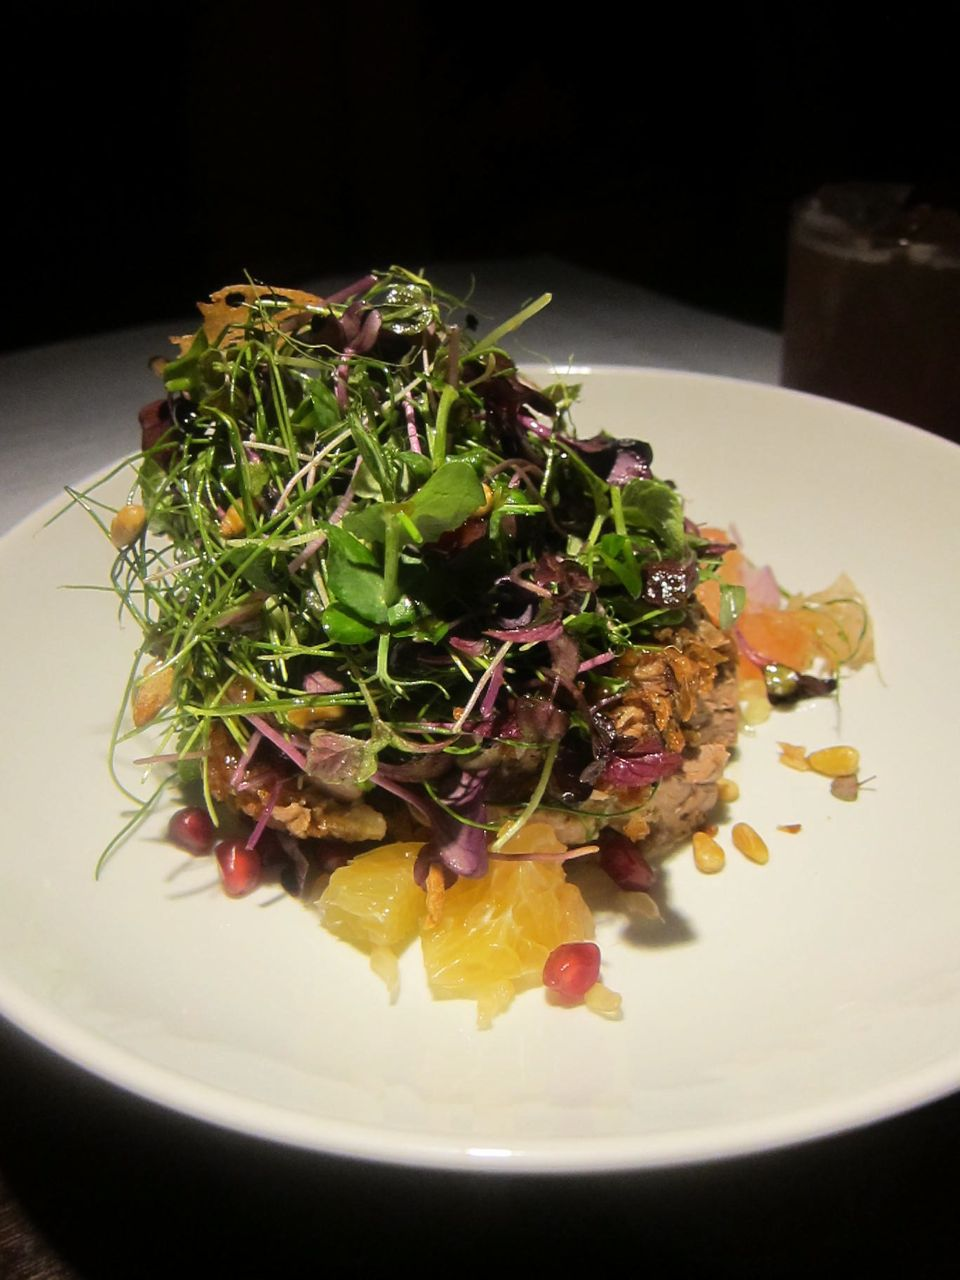 It's not especially Chinese but duck salad with citrus and greens is a lively starter